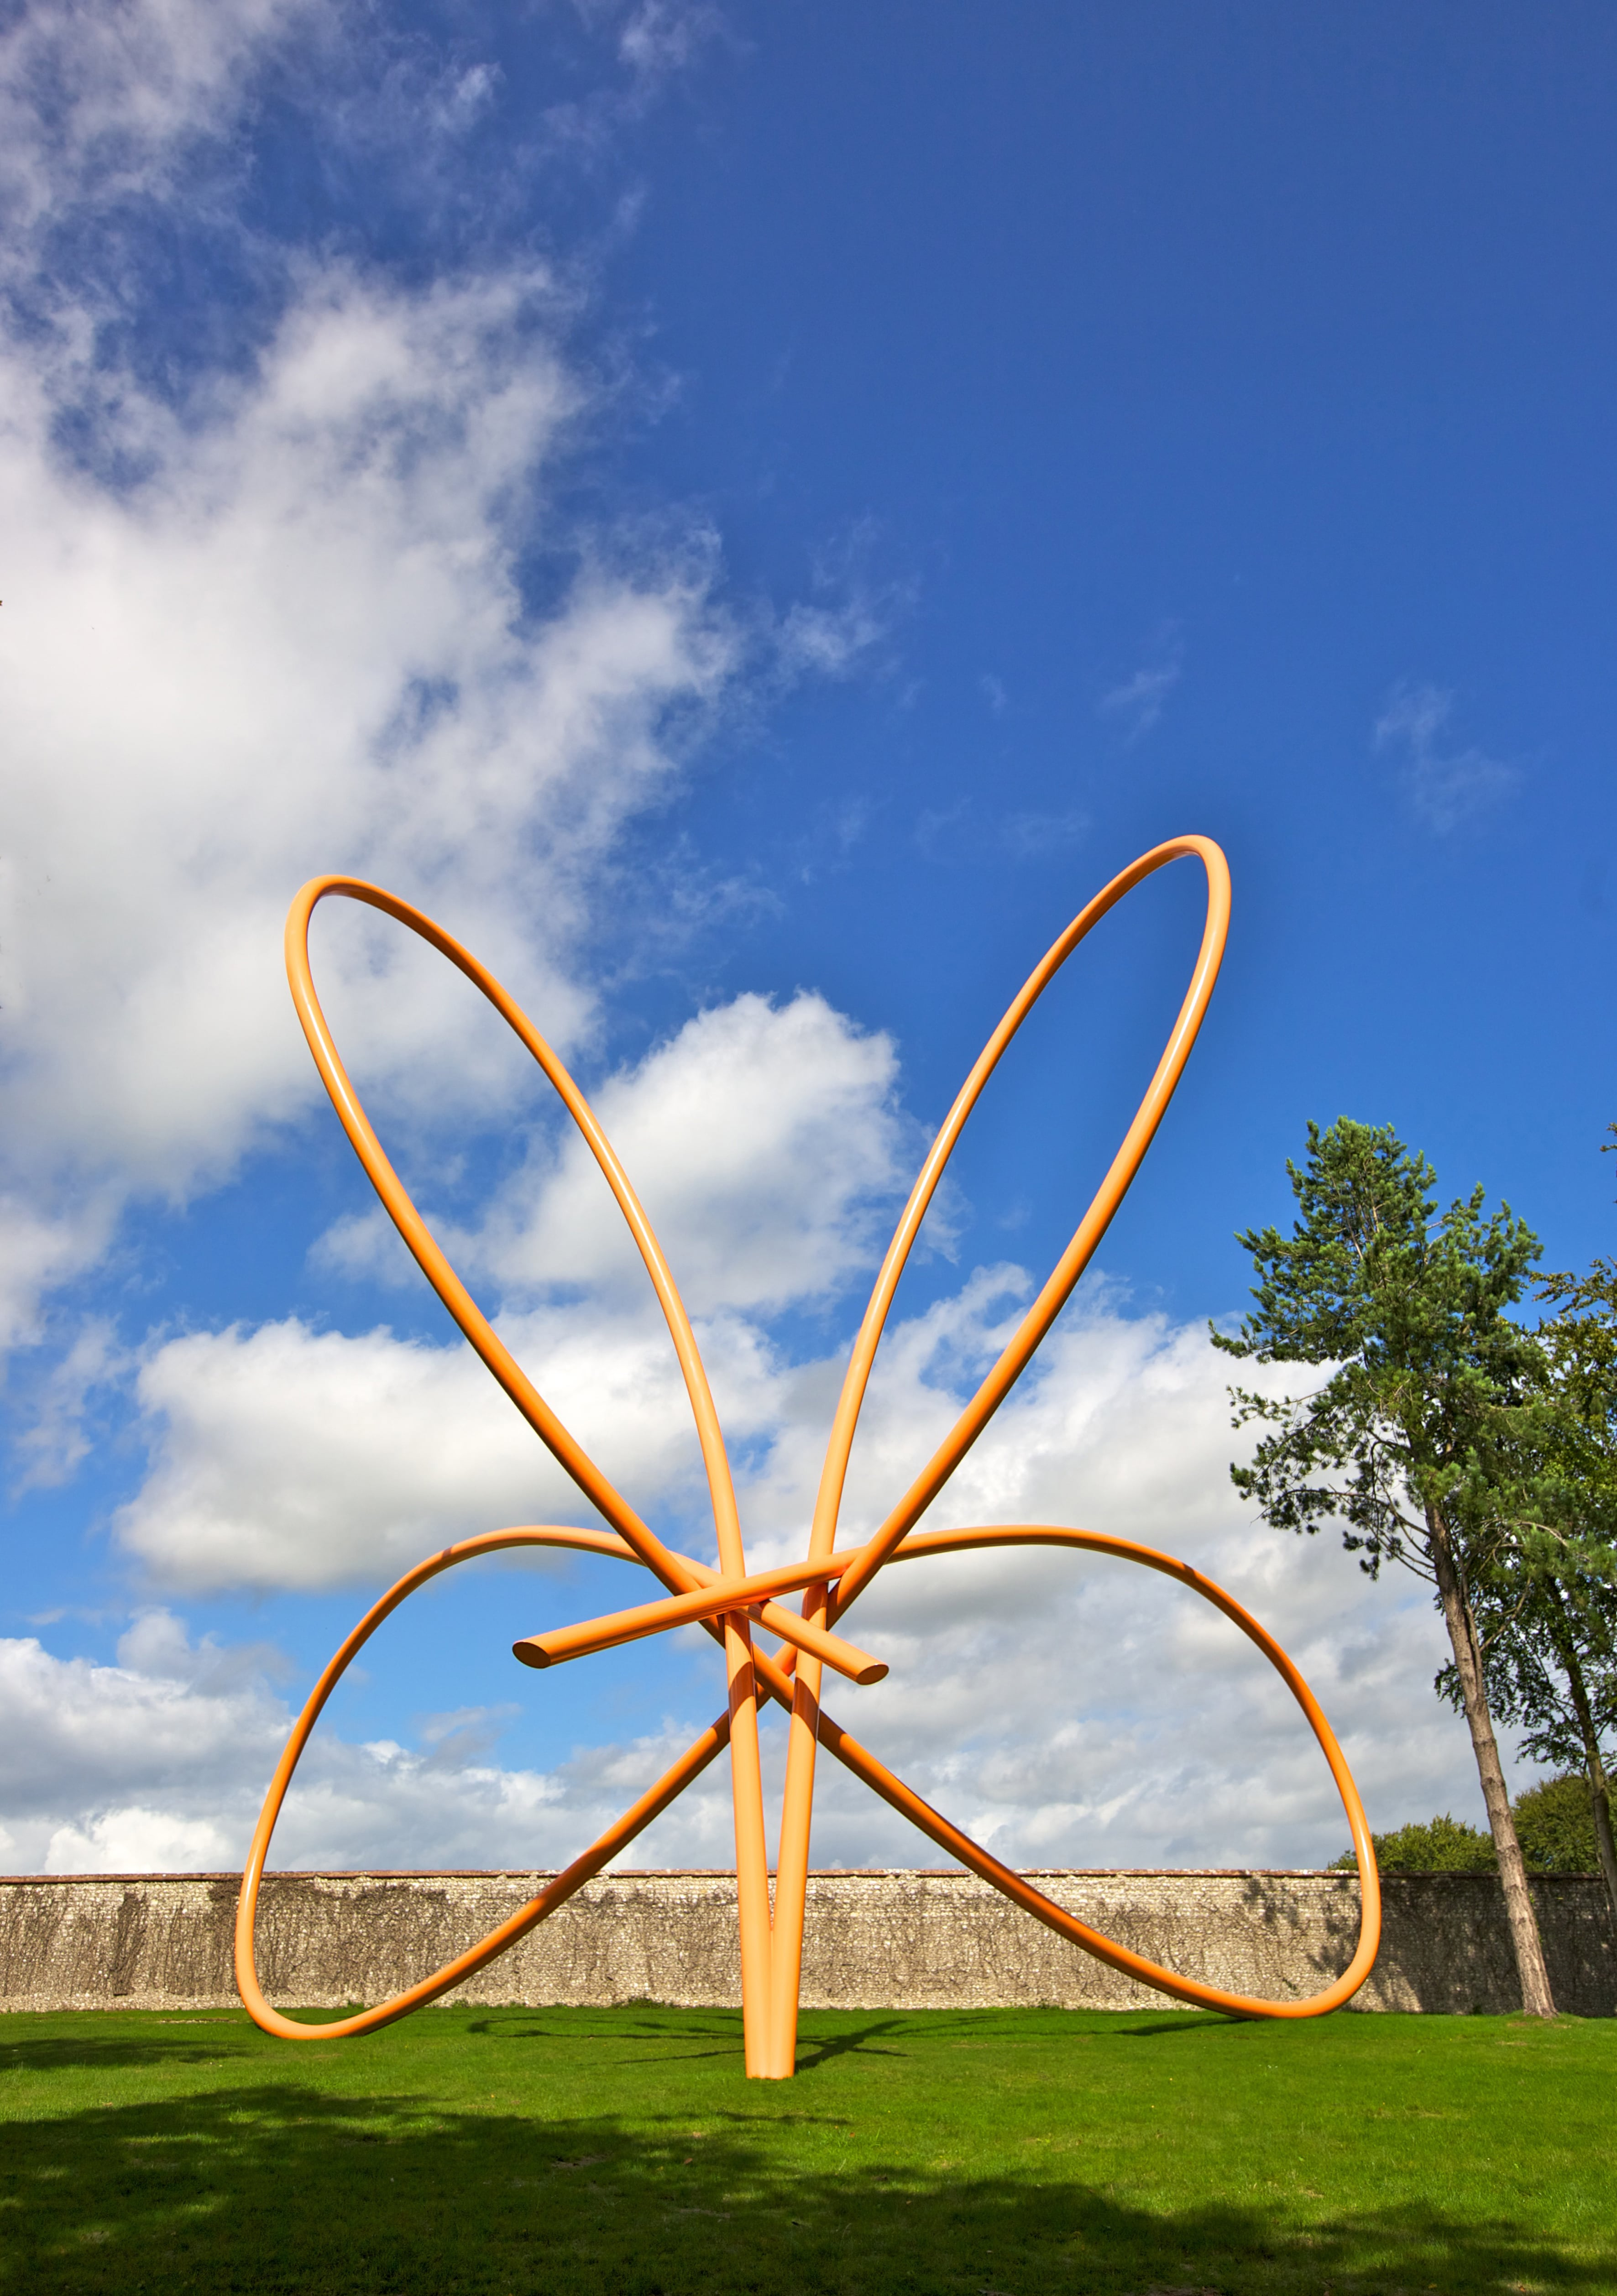 3. The Cass Sculpture Foundation, West Sussex - 50% off entry with National Art Pass